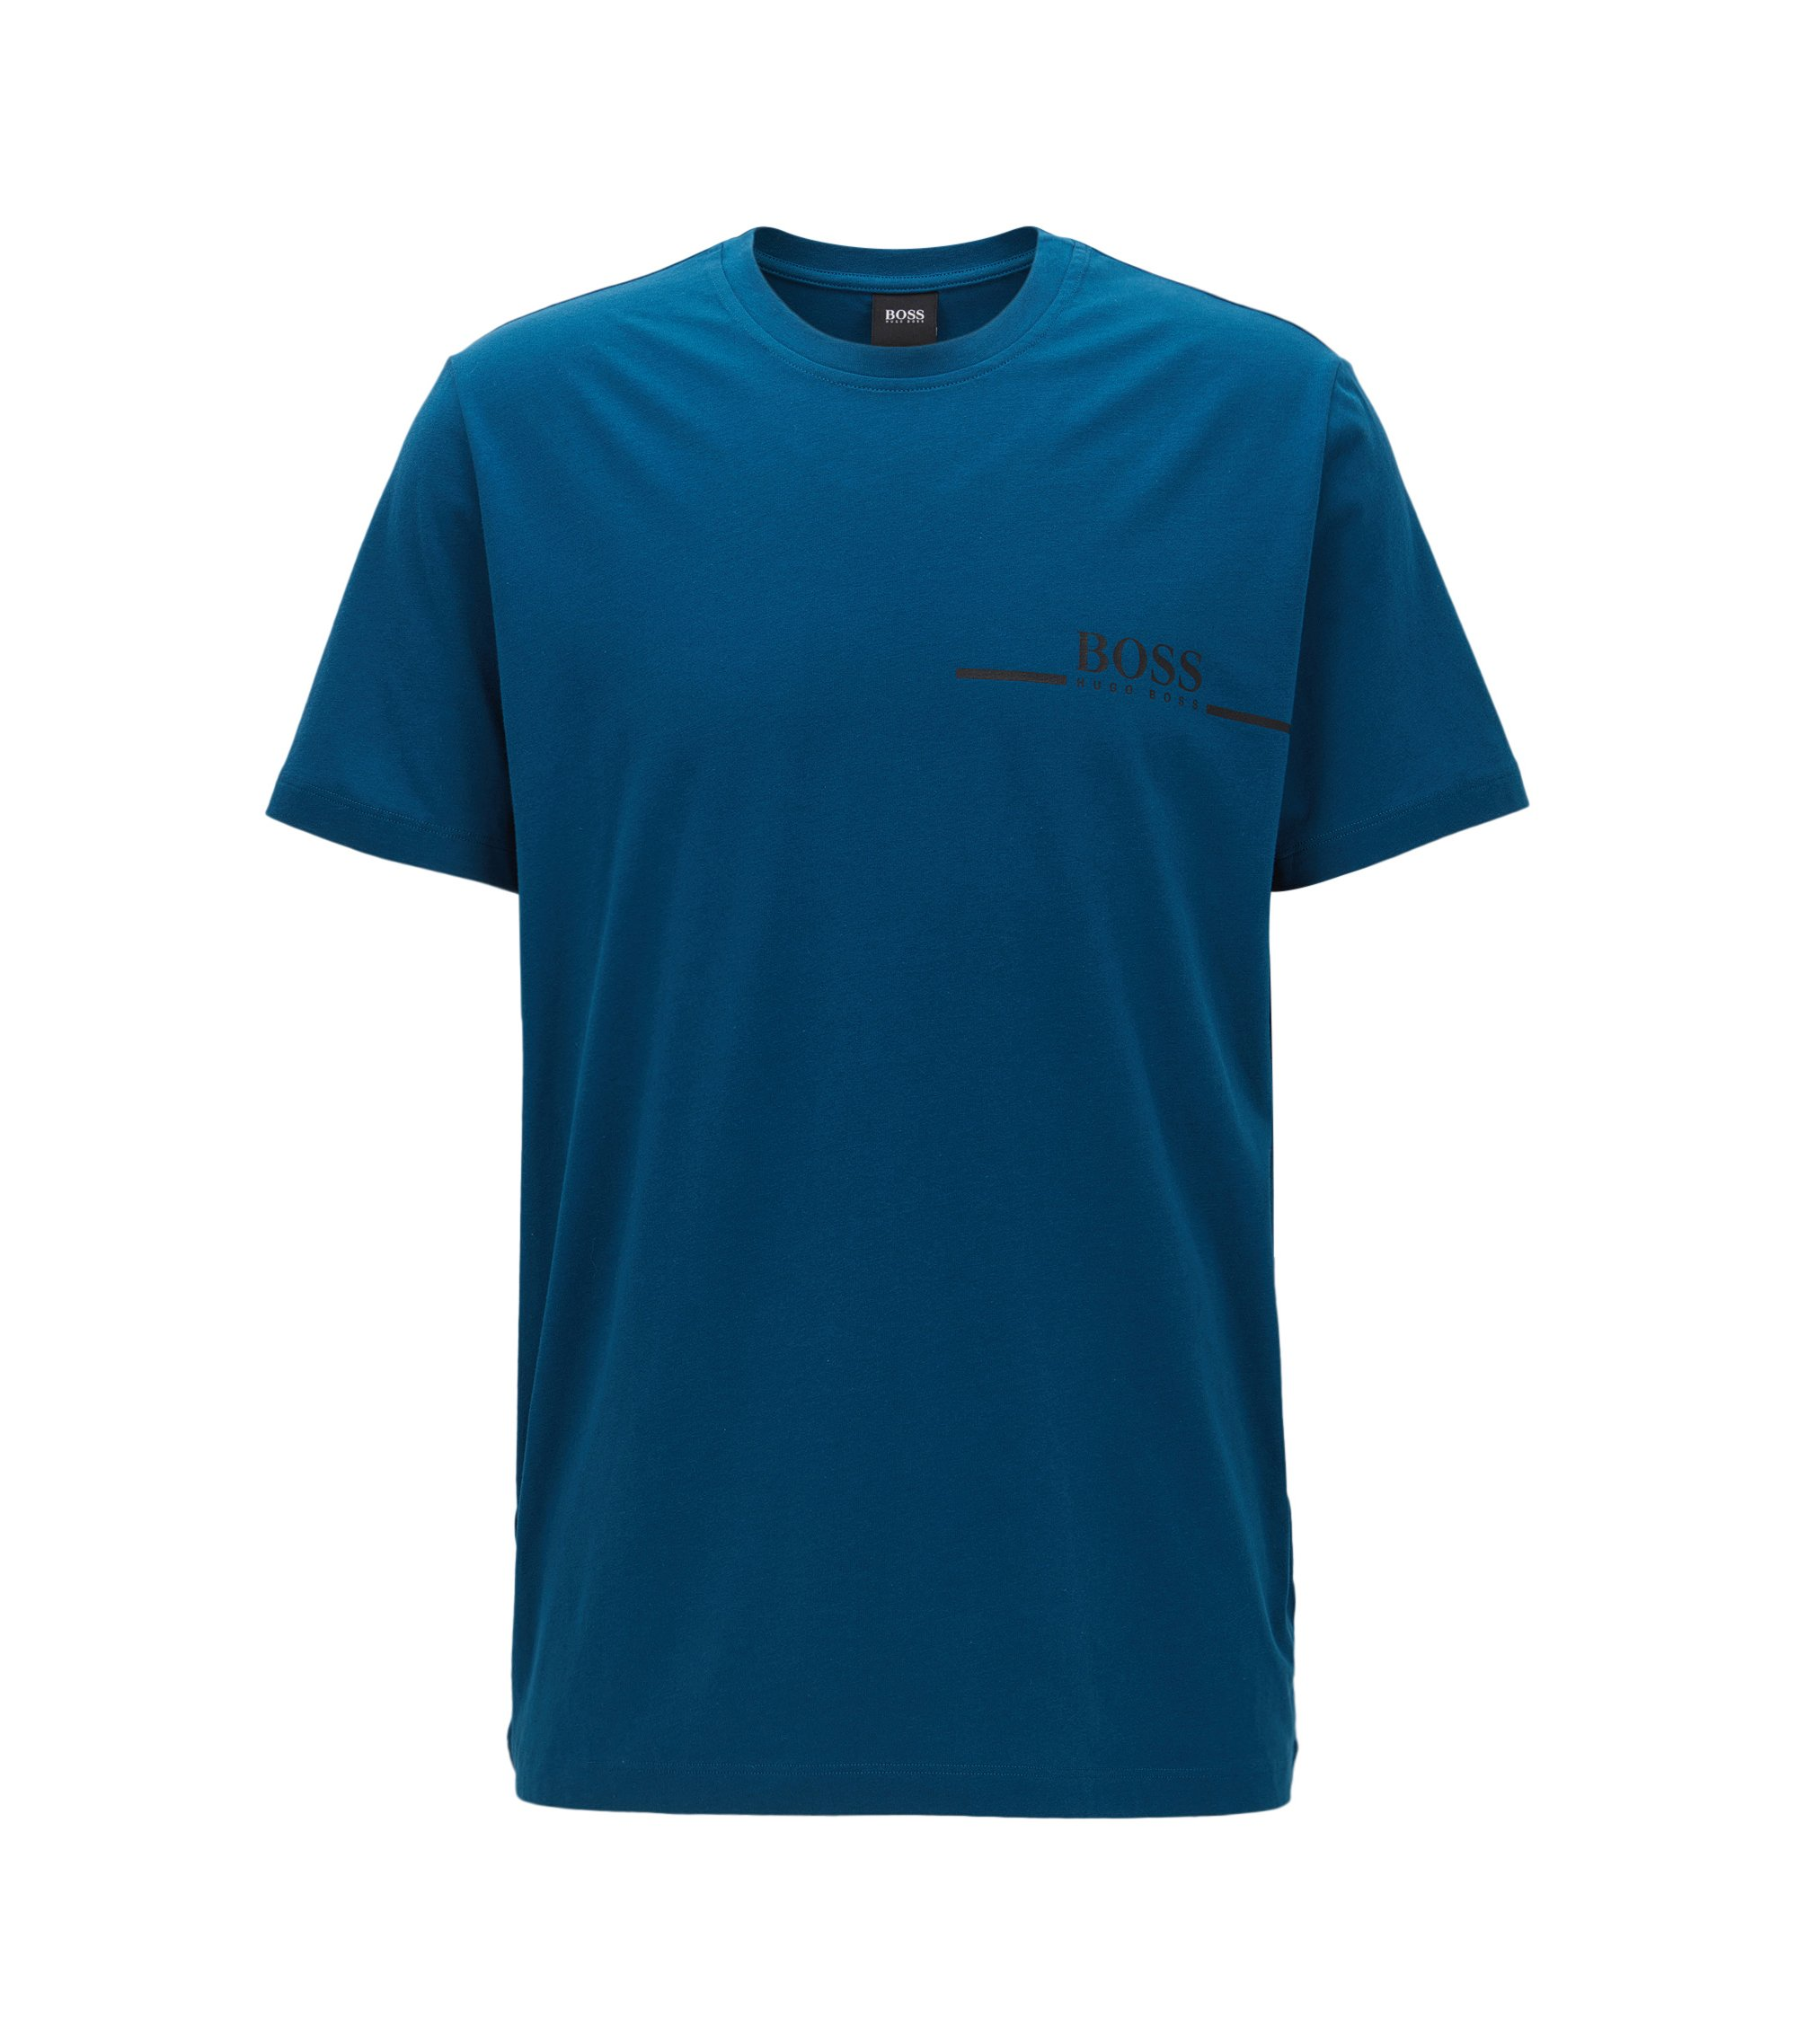 Relaxed-fit T-shirt in cotton jersey with logo print, Blue